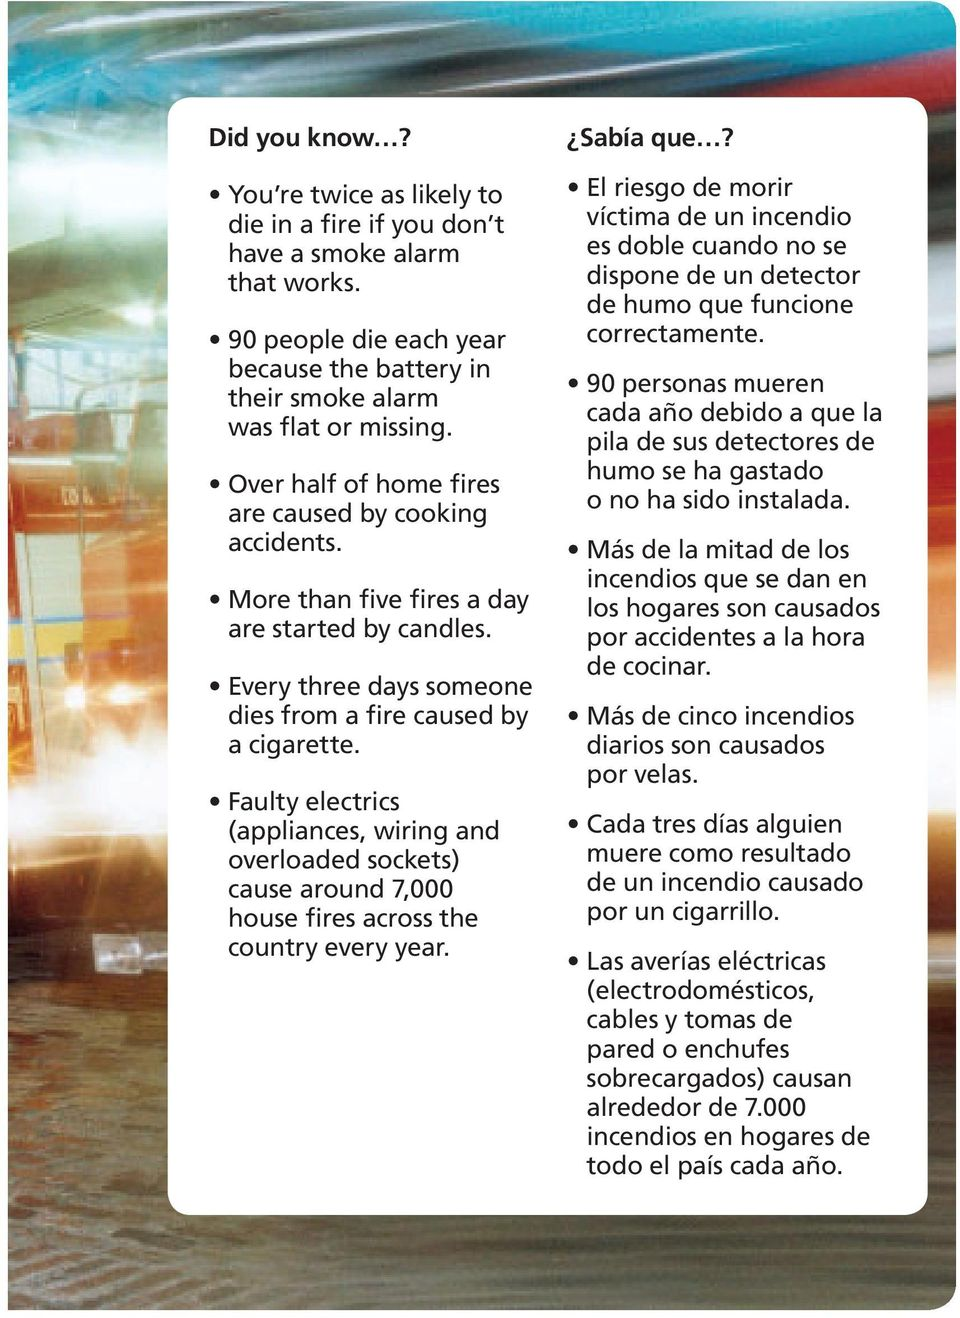 Faulty electrics (appliances, wiring and overloaded sockets) cause around 7,000 house fires across the country every year. Sabía que?